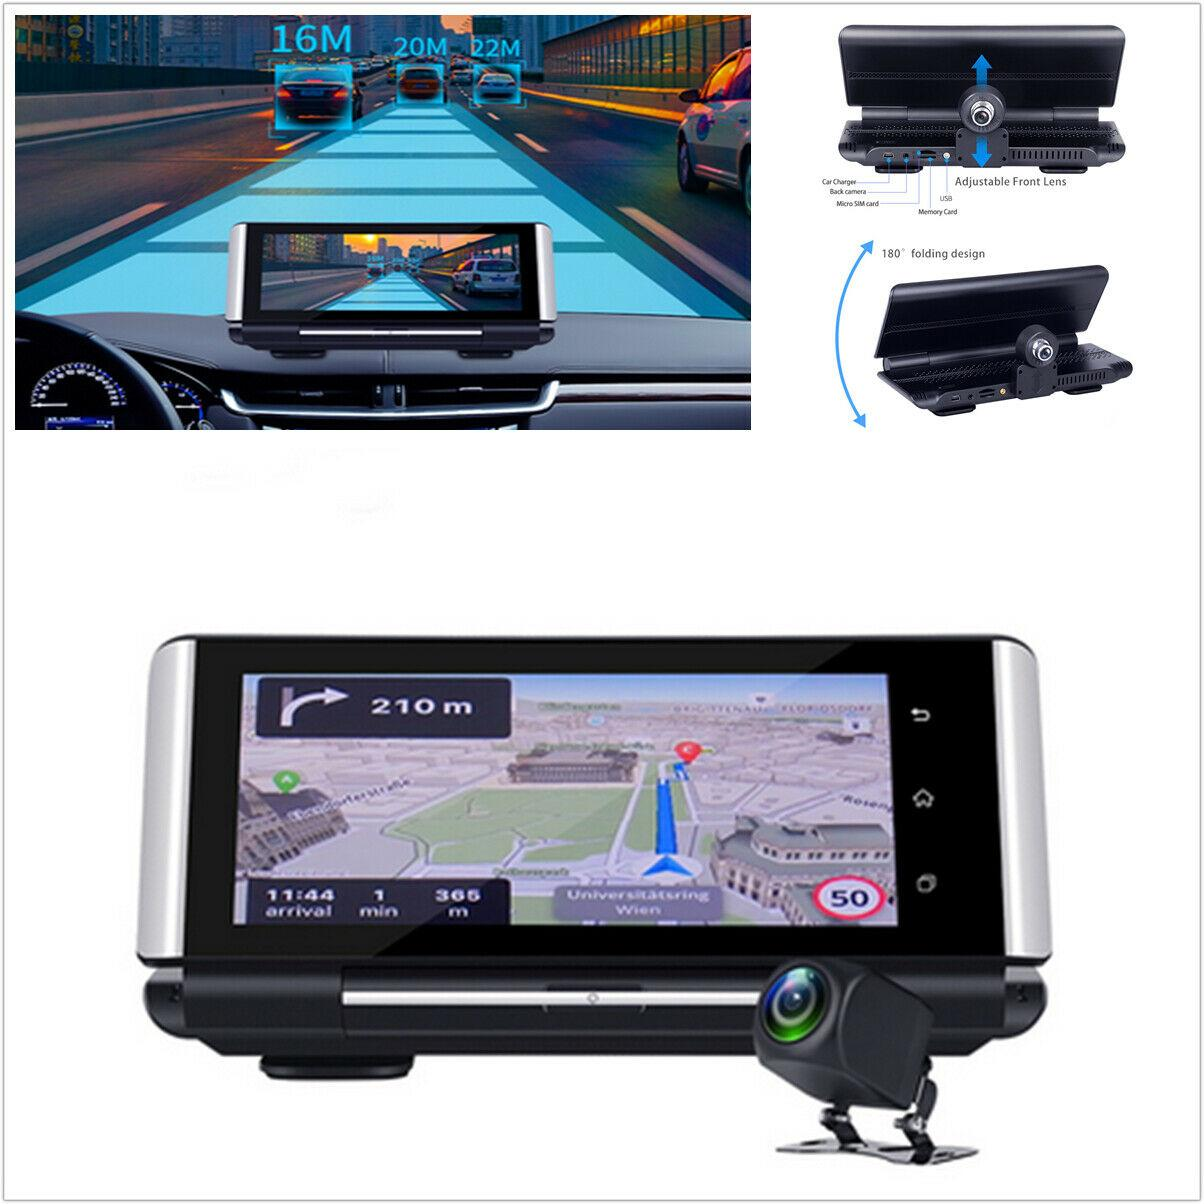 Car dvr 1080P Android 4G DVR Camera 7in Dual Lens GPS Driving Recorder For Car Dashboard